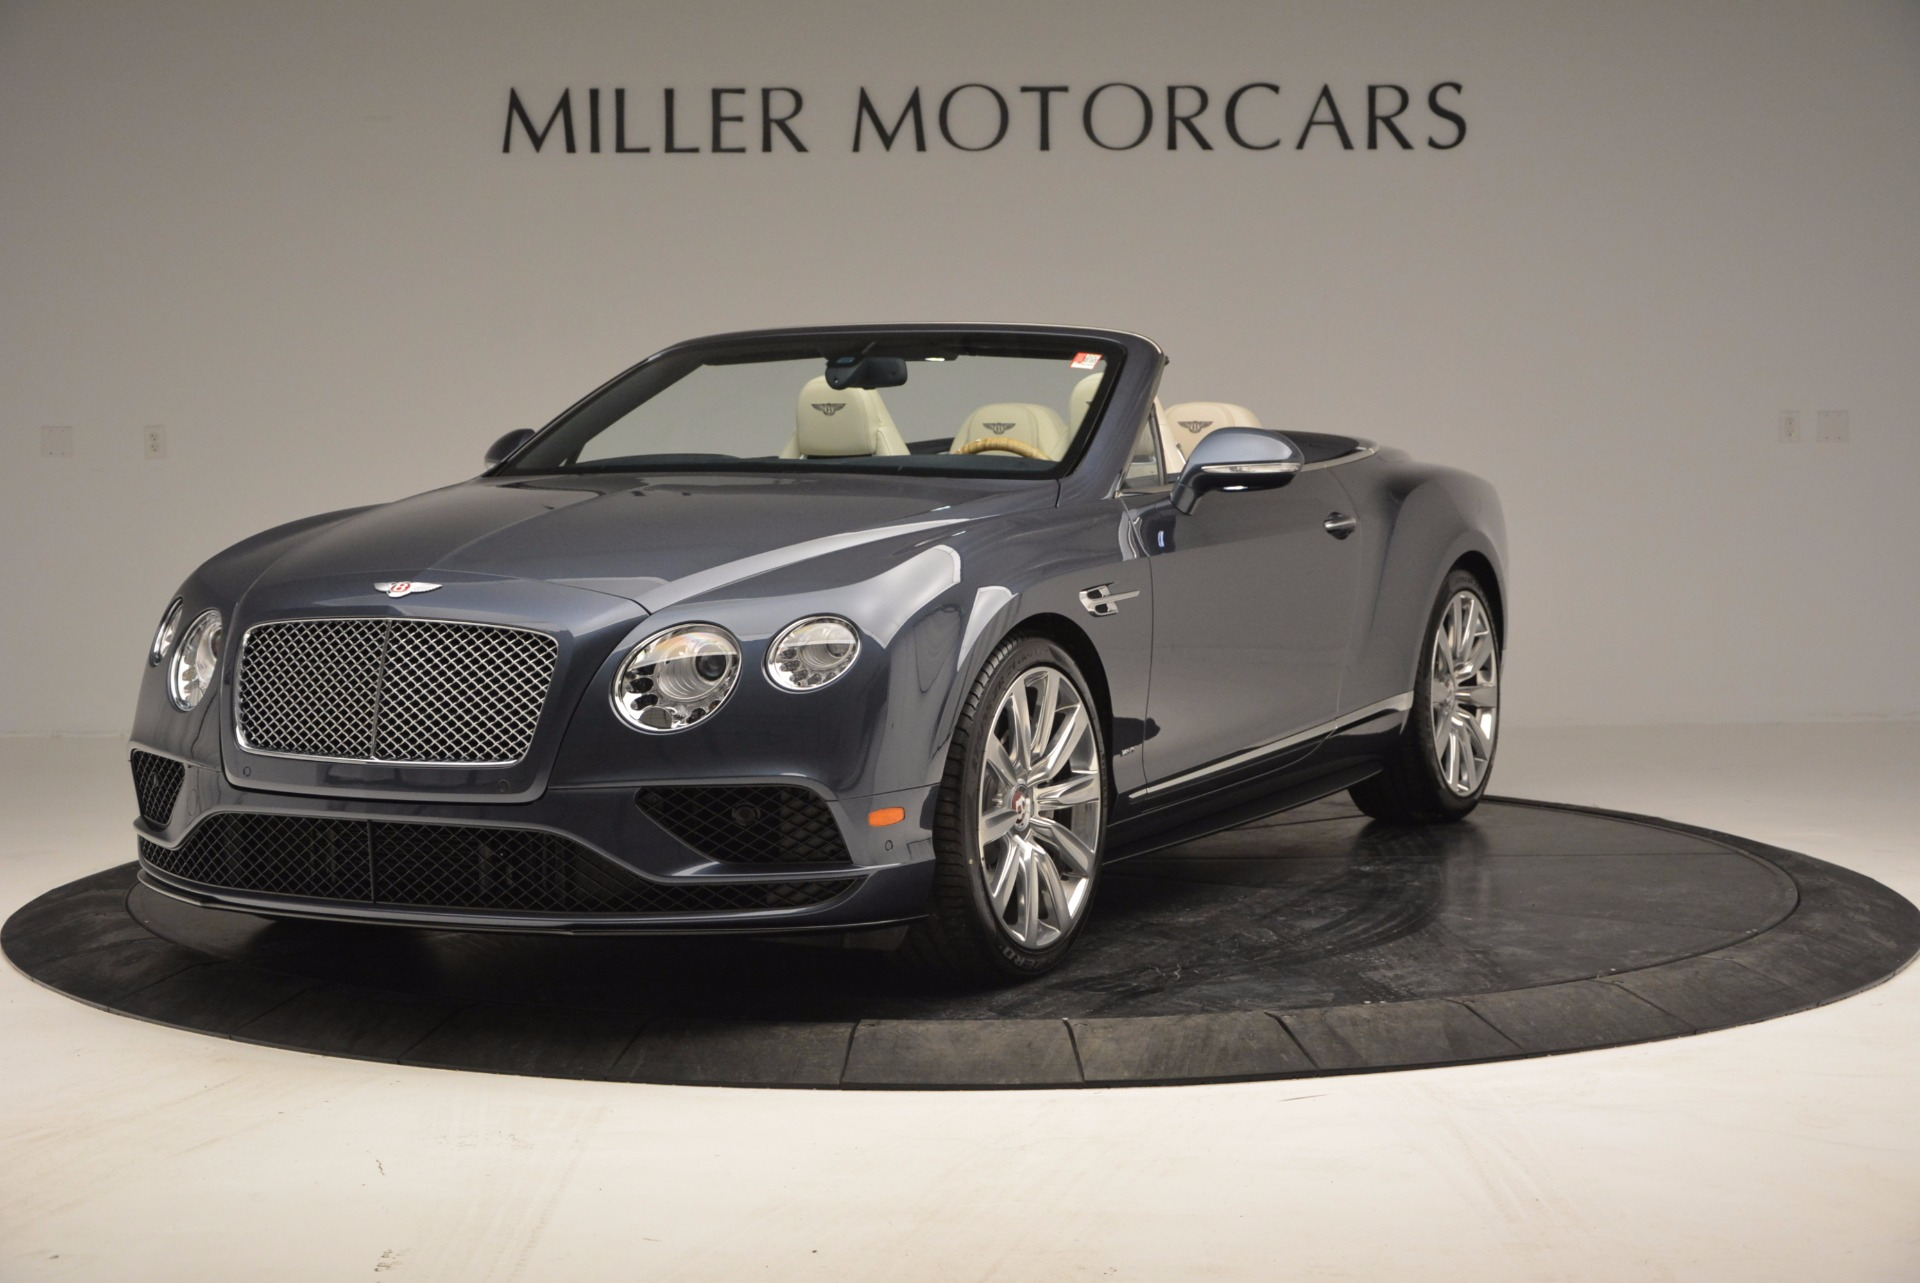 New 2017 Bentley Continental GT V8 S For Sale In Westport, CT 722_main